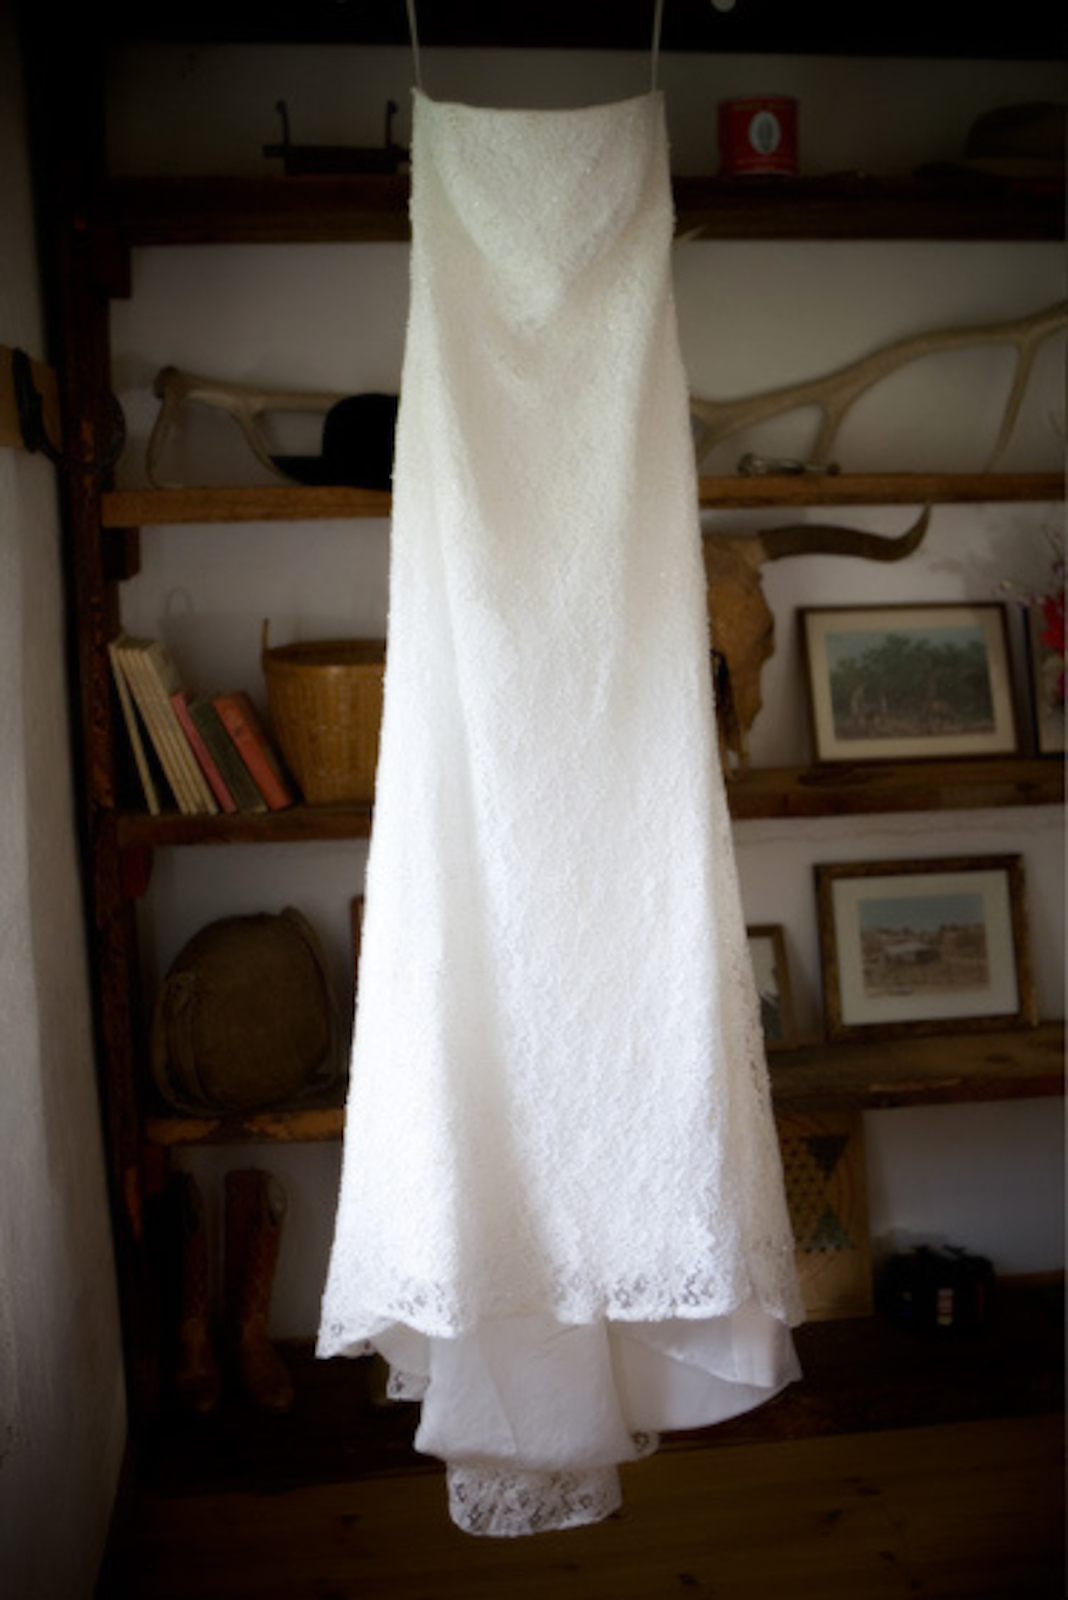 White dress in the study at the circle G ranch in Fountain Hills, Arizona